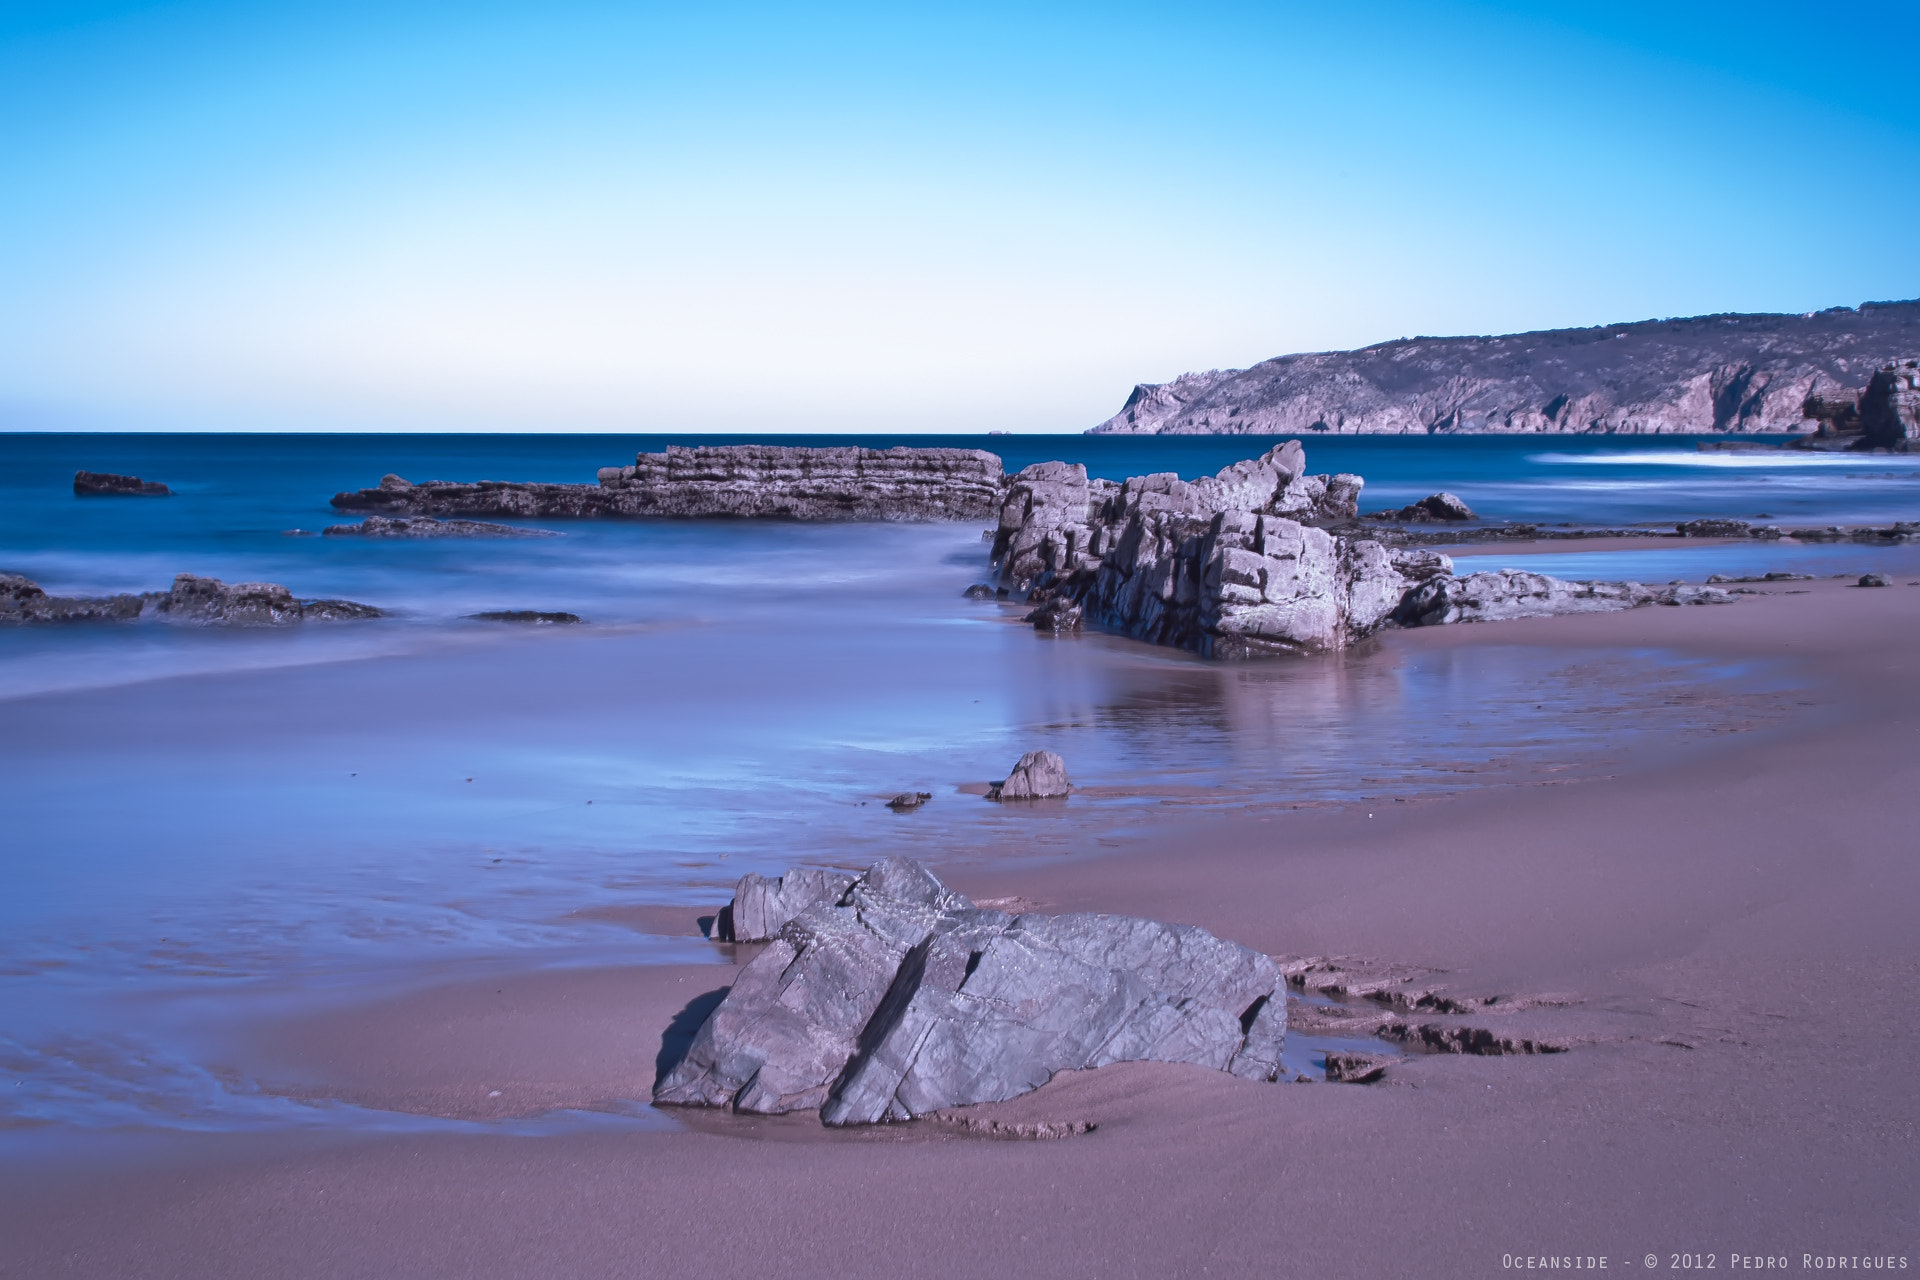 Photograph Oceanside by Pedro Rodrigues on 500px